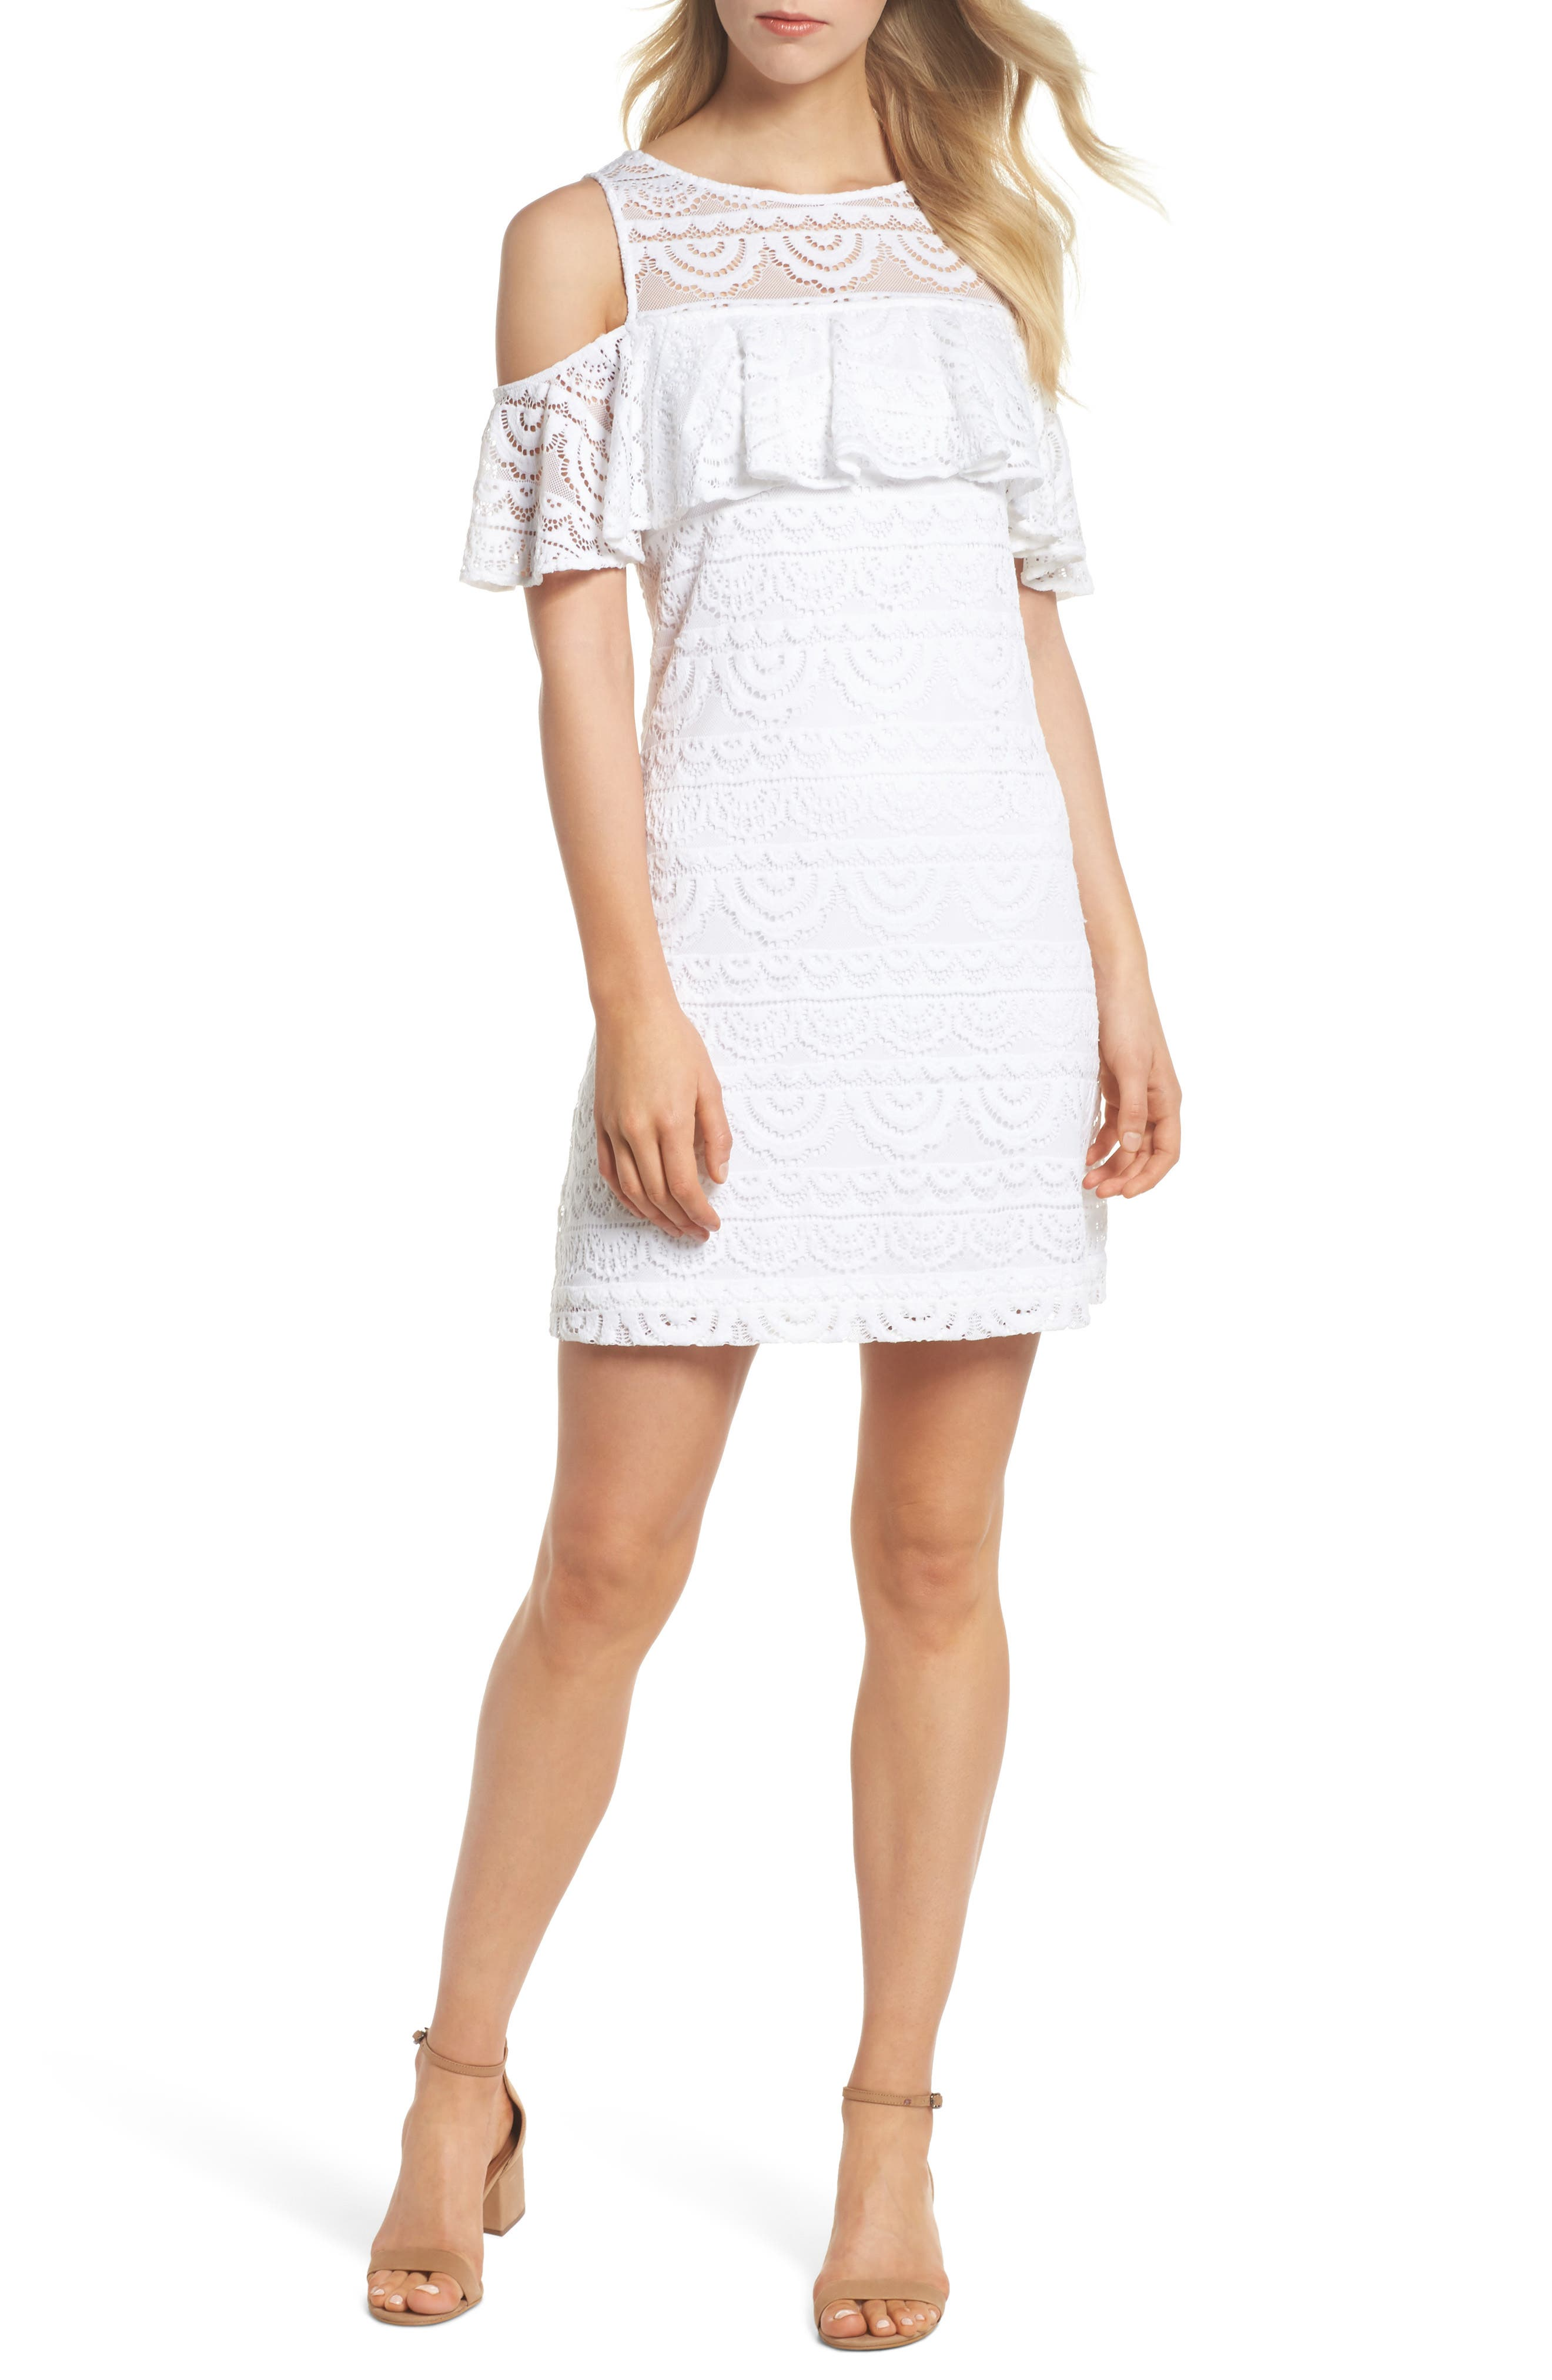 Lyra Cold Shoulder Lace Dress,                         Main,                         color, RESORT WHITE SCALLOP LACE